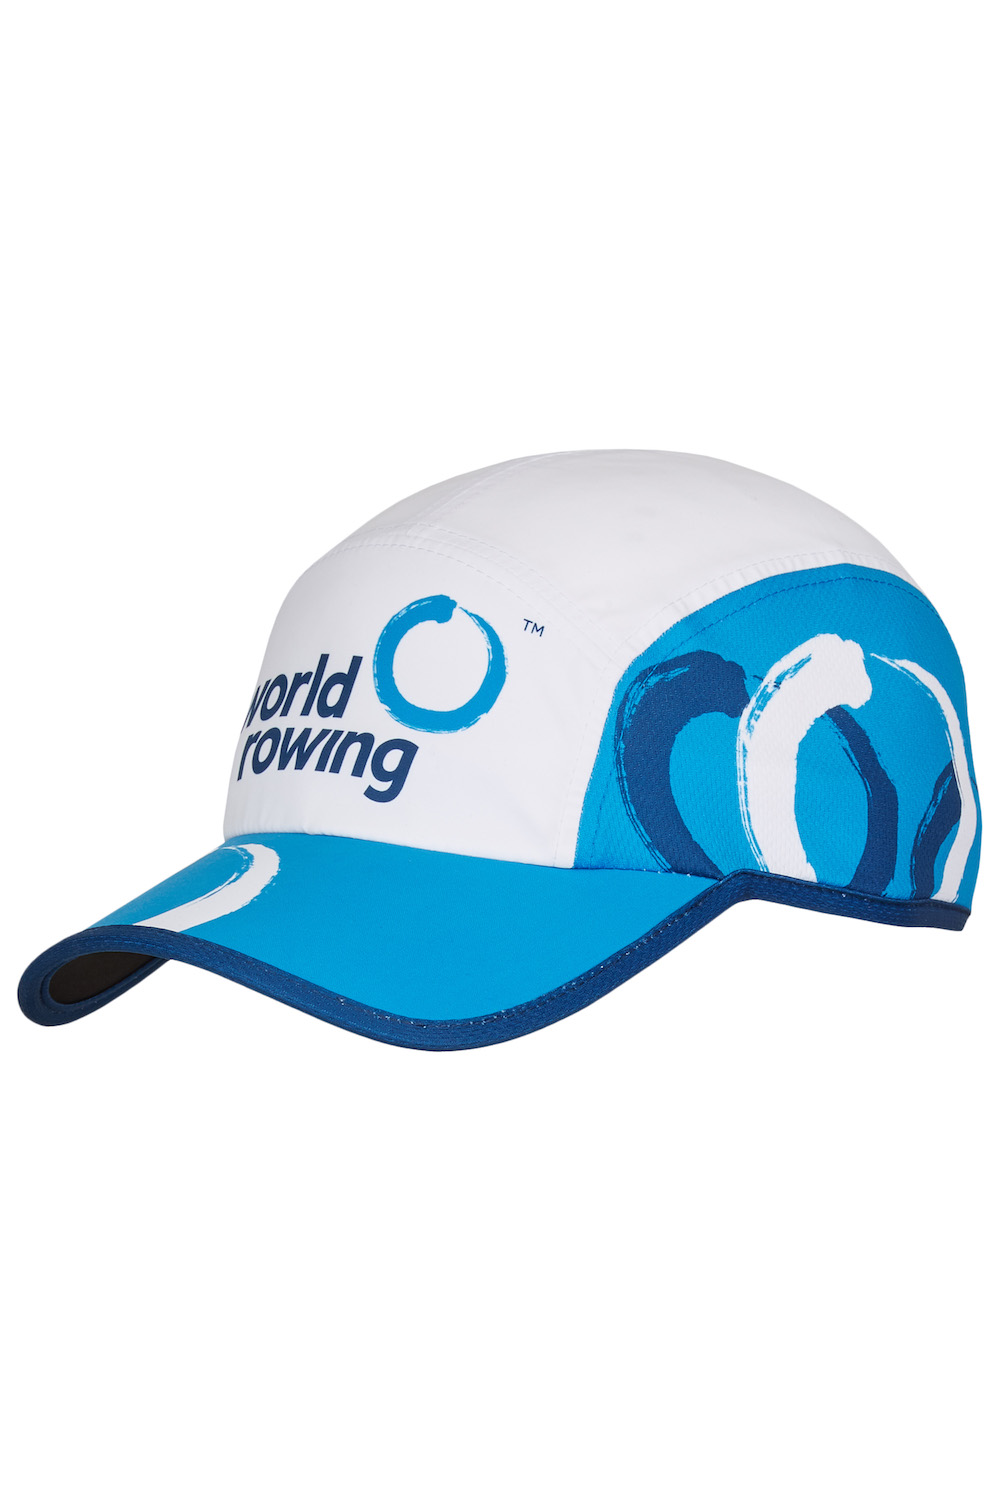 World Rowing Performance Cap - turquoise